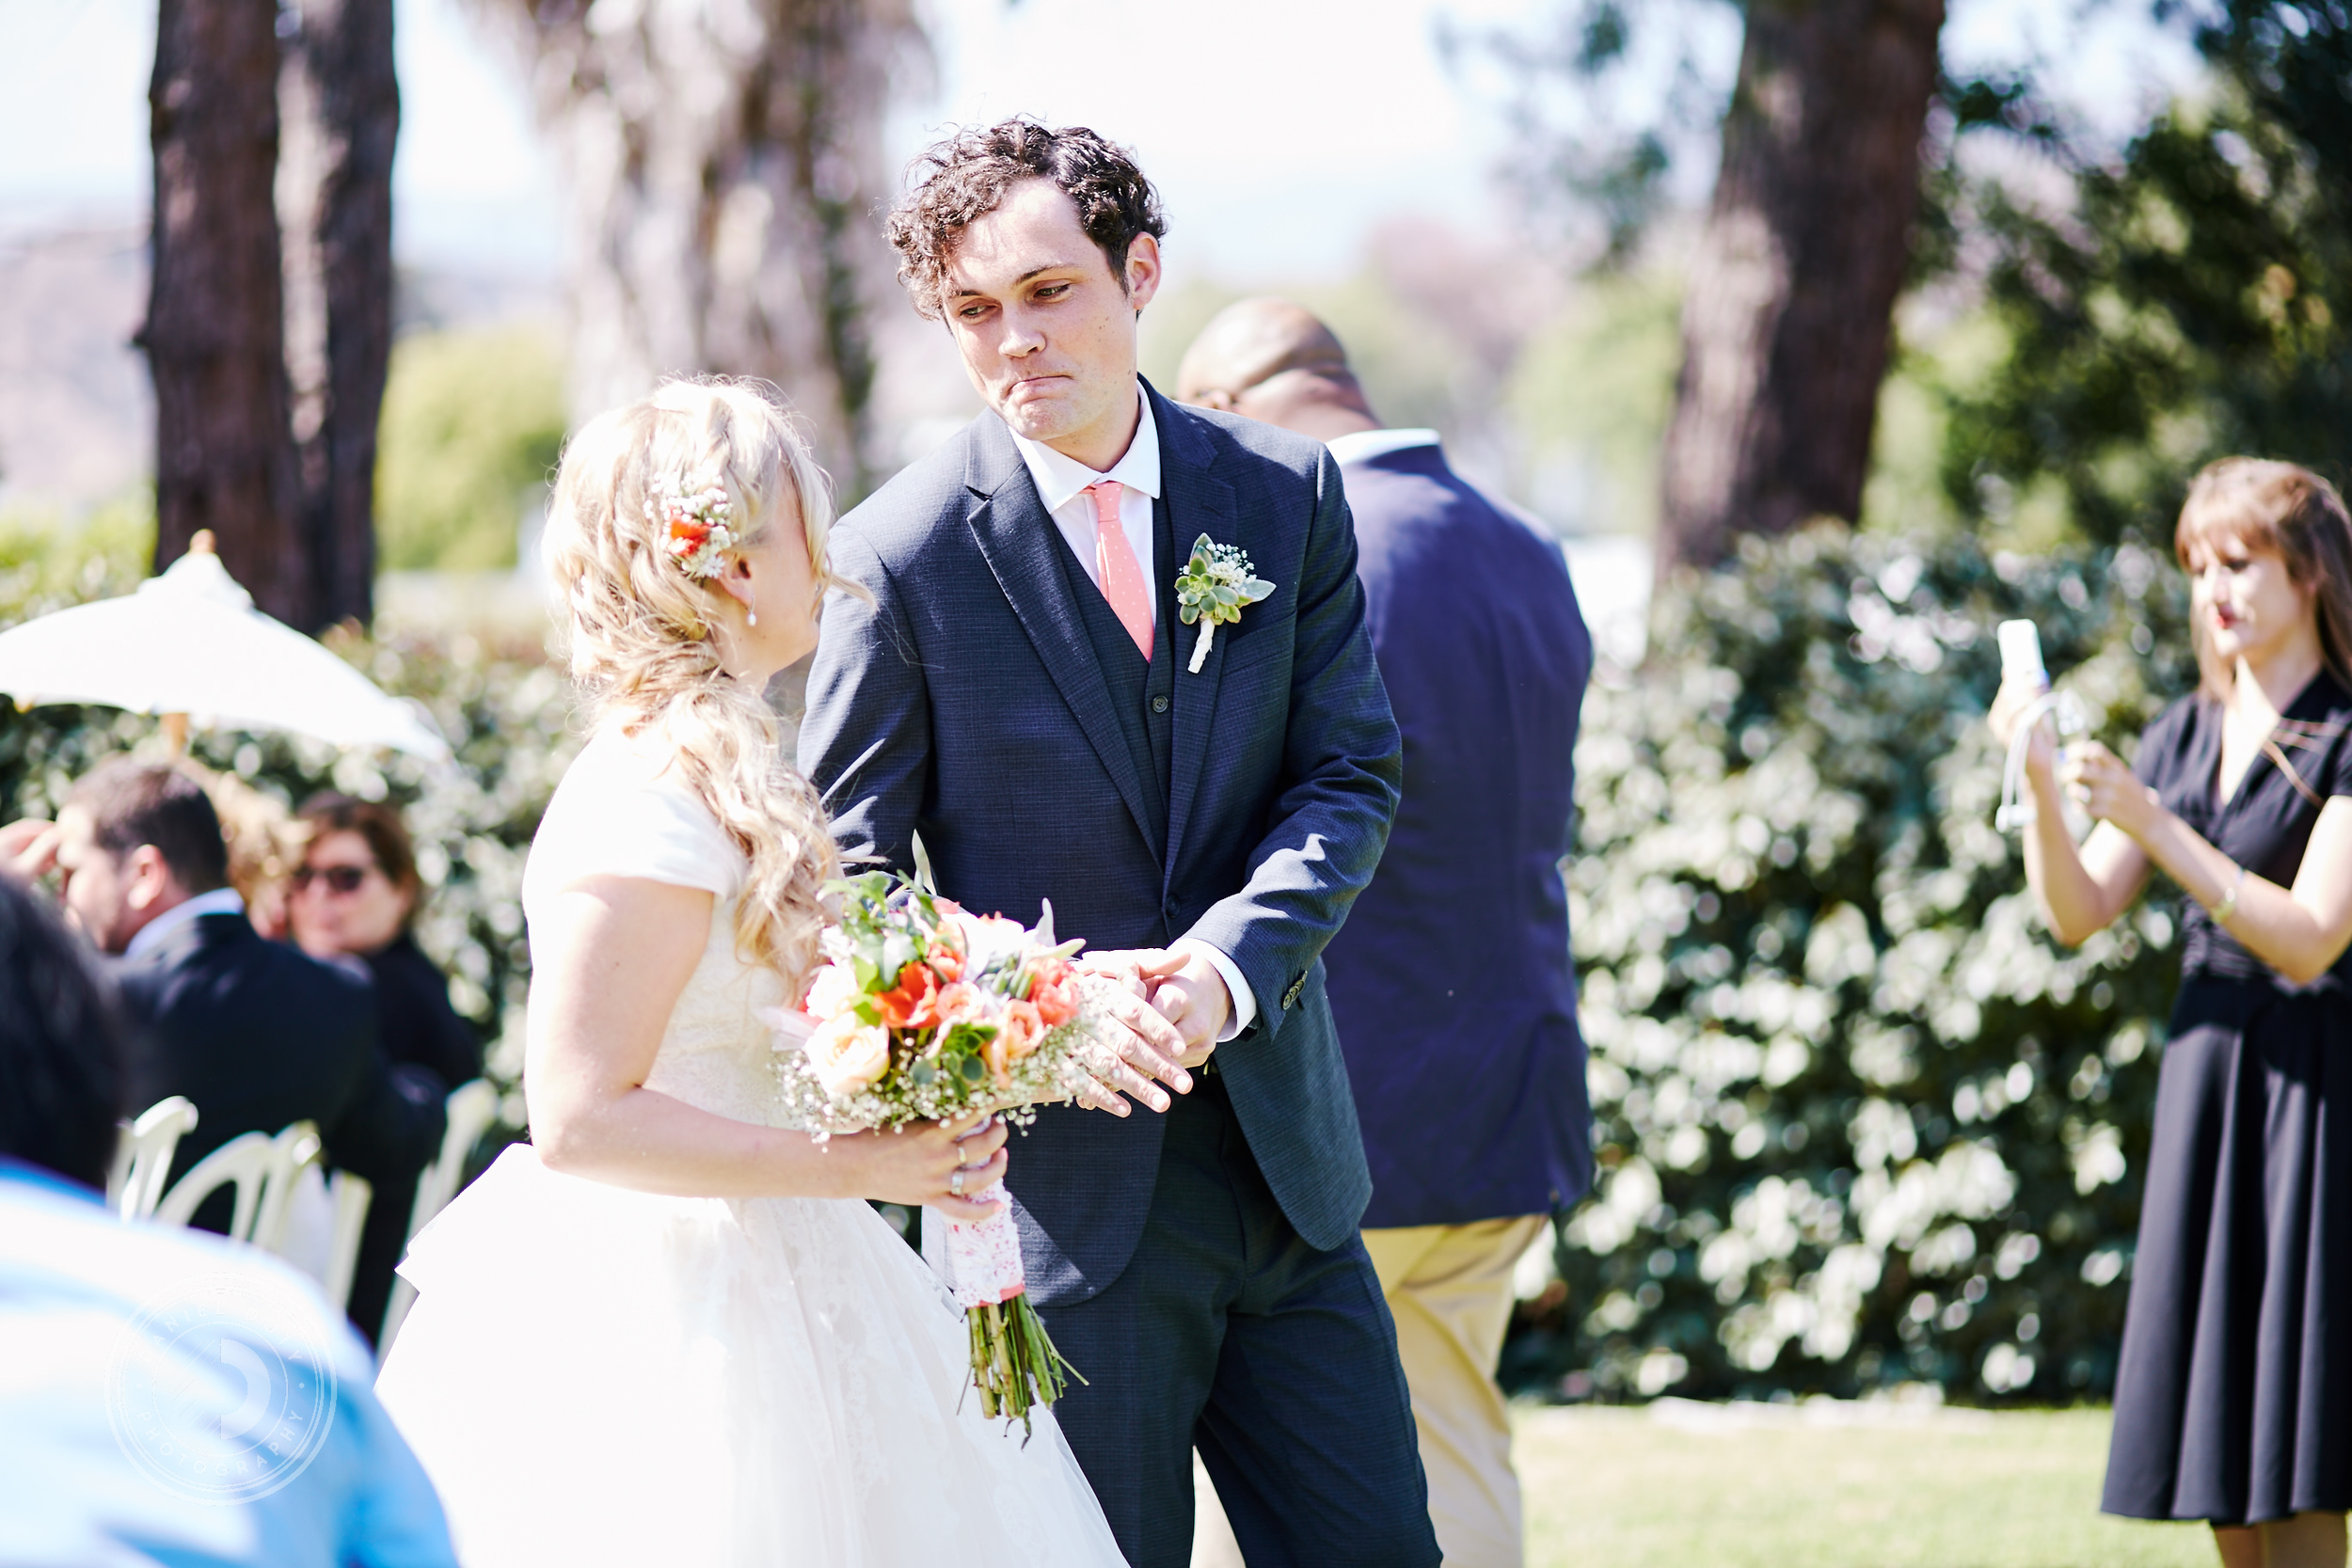 Daniel Doty Photography Erin Colin SoCal Wedding Photographer Strathearn 148.jpg